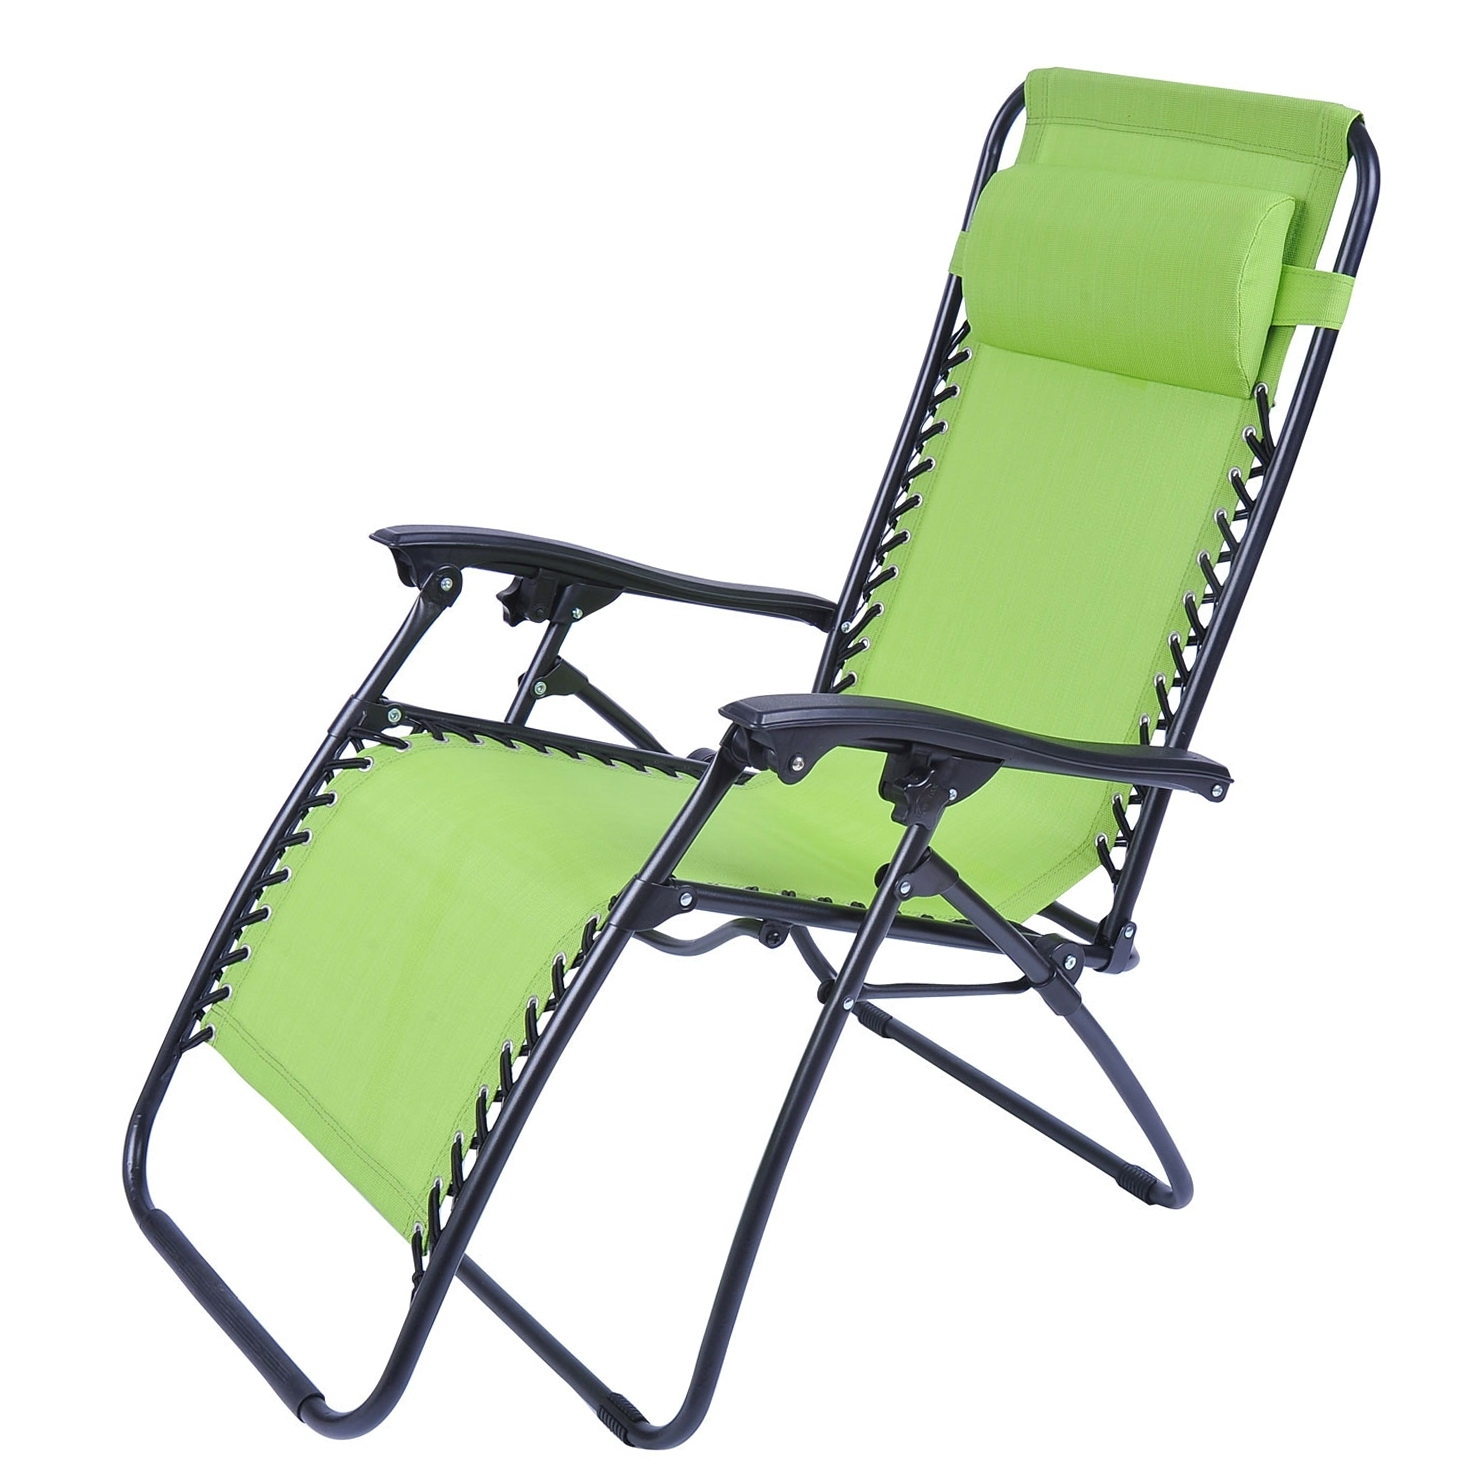 Best And Newest Folding Chaises Inside Folding Chaise Lounge Chair Patio Outdoor Pool Beach Lawn Recliner (View 1 of 15)